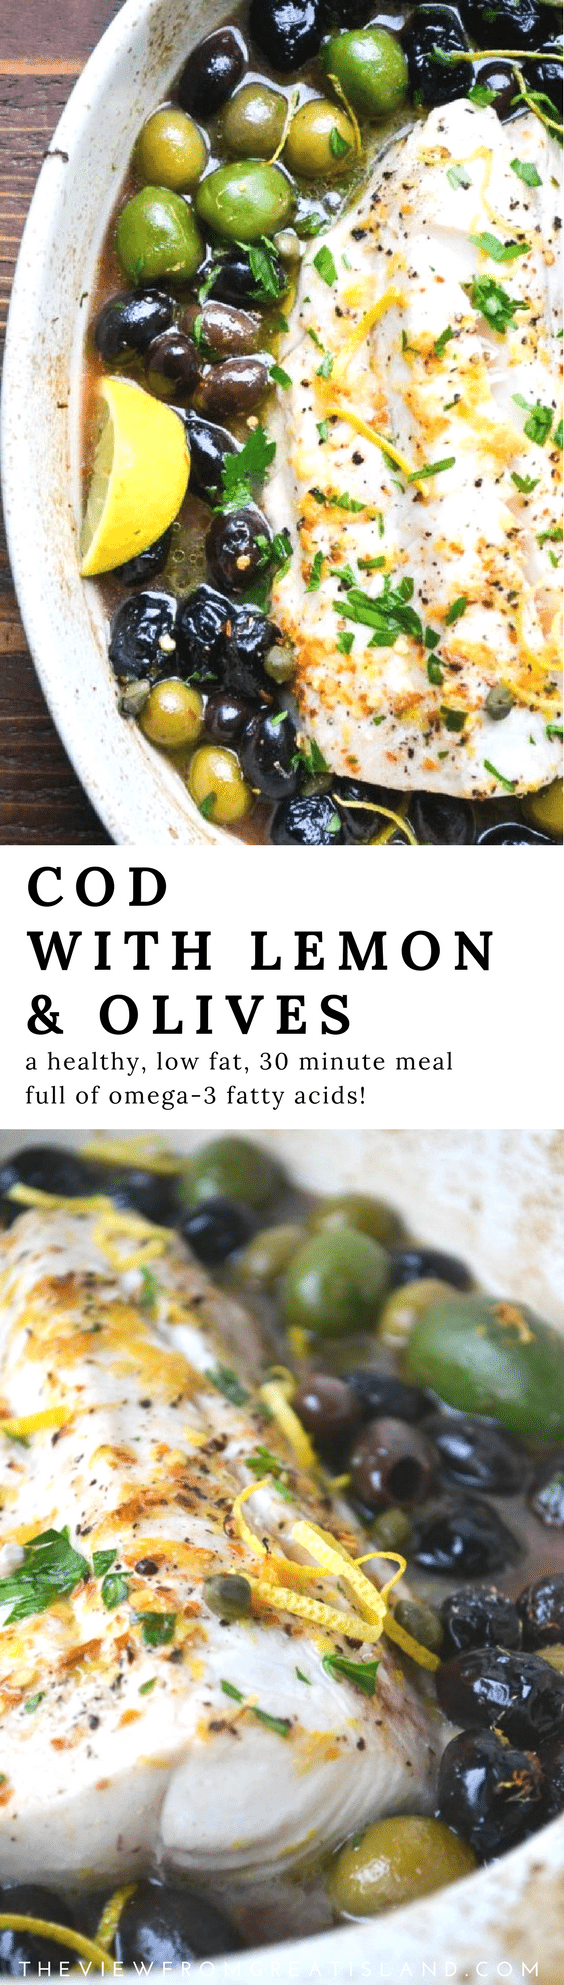 Cod with Lemon and Olives is a low fat and delicious 30 minute meal, full of healthy omega-3 fatty acids, and one of my favorites. For such a simple recipe it's packed with flavor! #fish #cod #30minutemeal #omega-3 #mediterraneandiet #weightwatchers #paleo #whole30 #lowfat #healthydinner #dinner #easyfishrecipe #codfish #bakedfish #olives #lemon #glutenfree